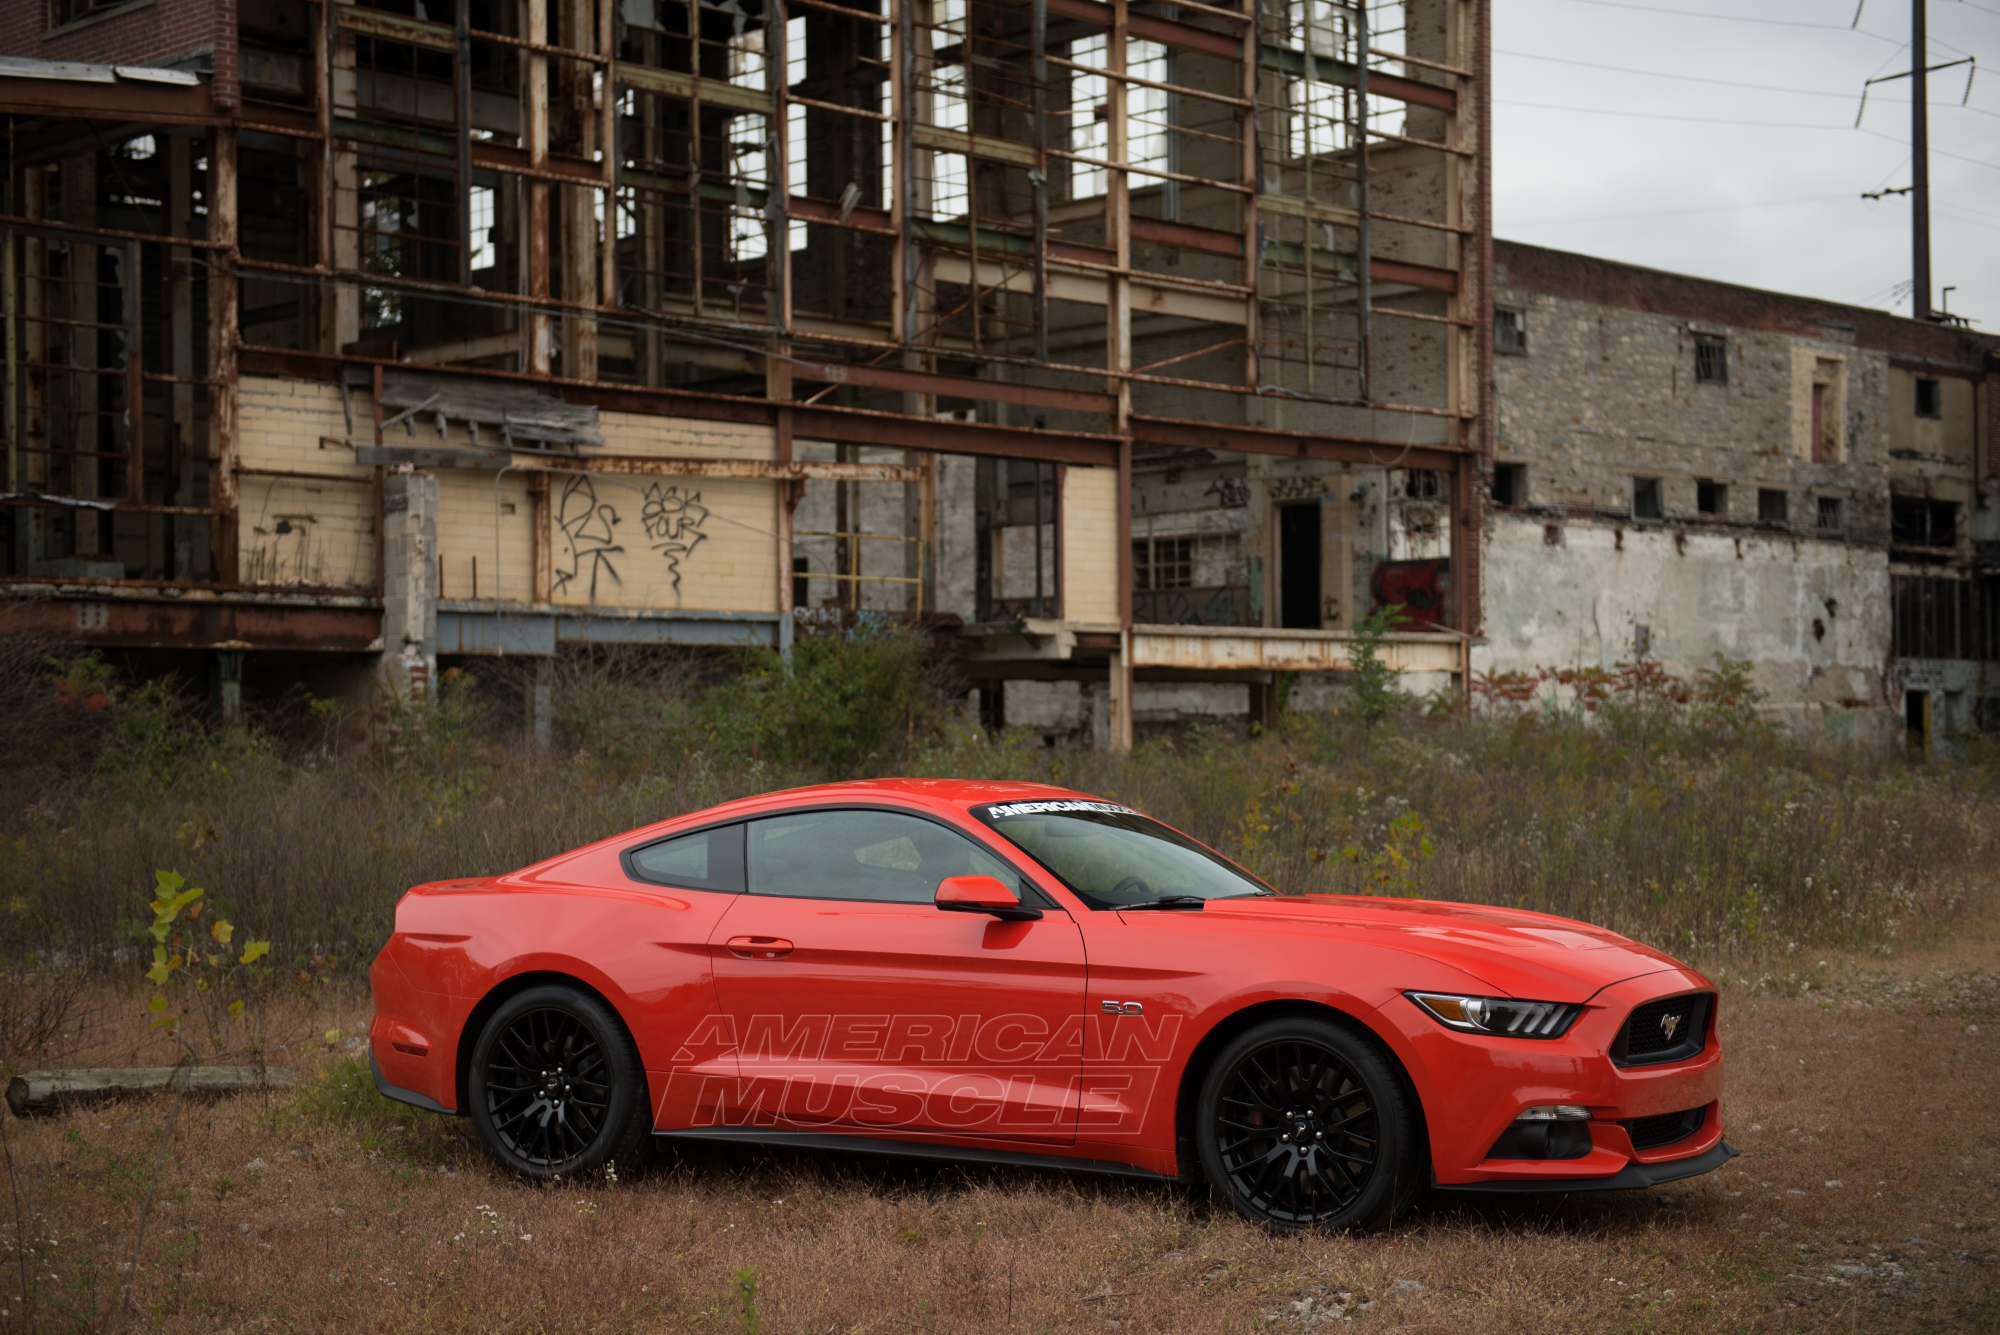 Video: AmericanMuscle's Official Review Of The 2015